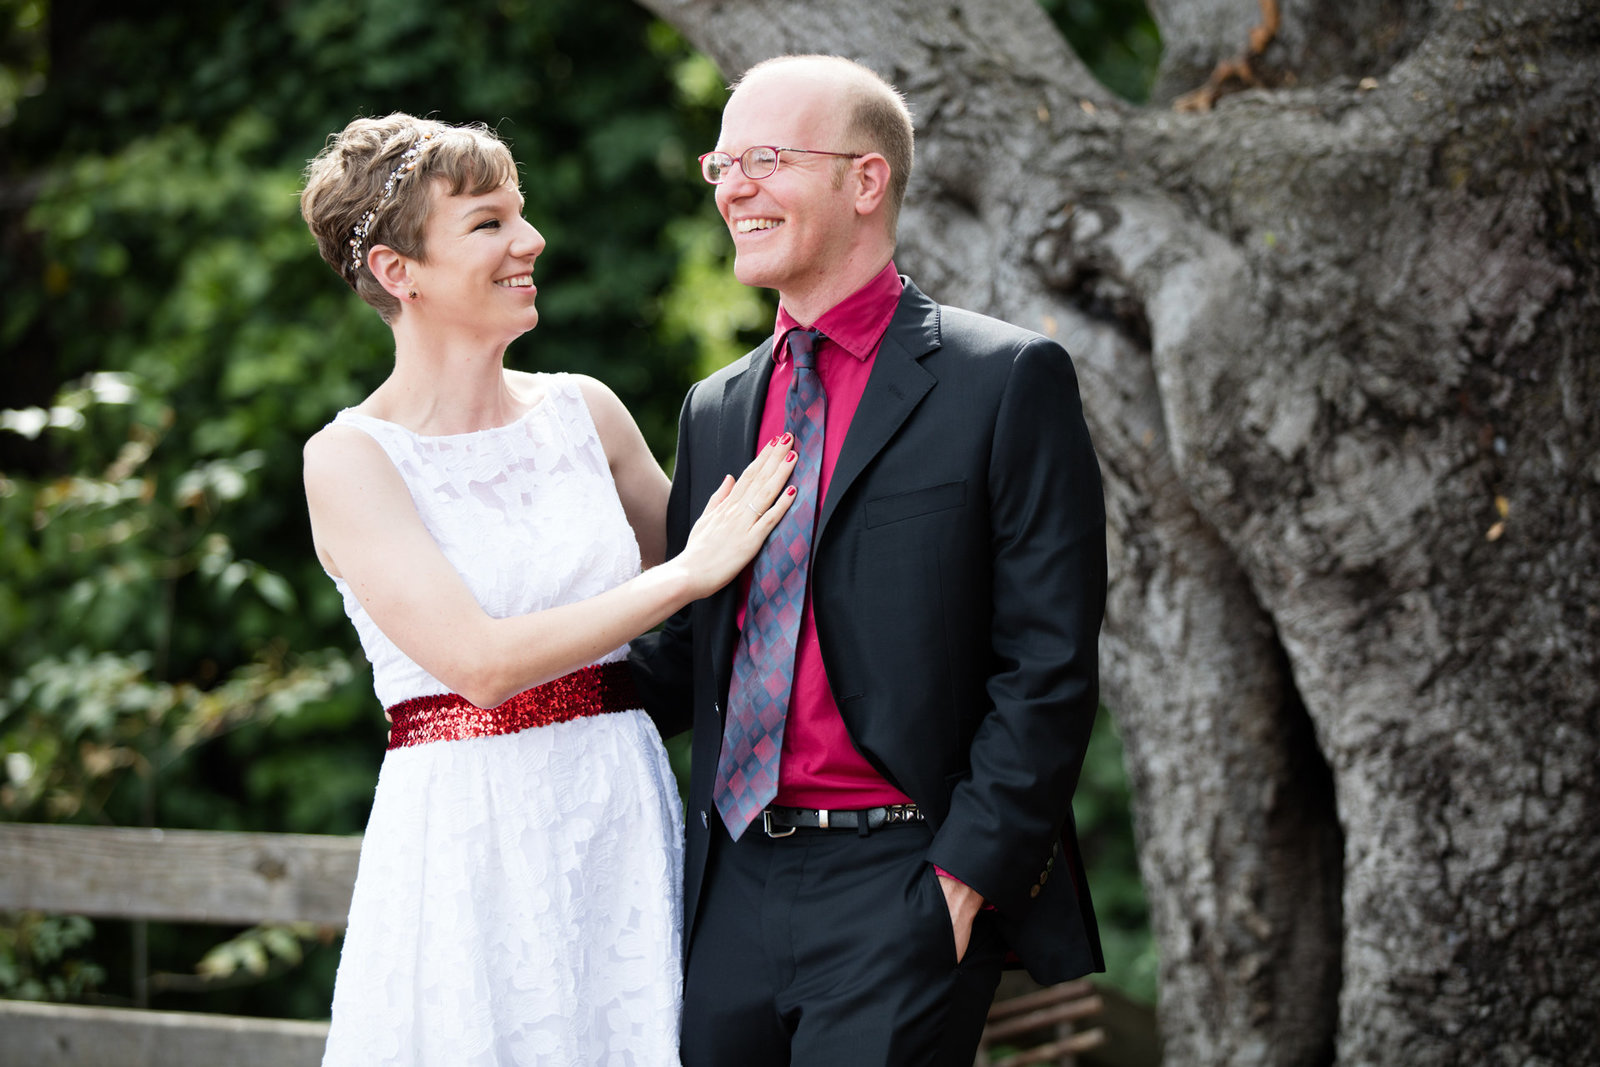 Bride and groom smile and laugh in portrait at stunning northern california wedding